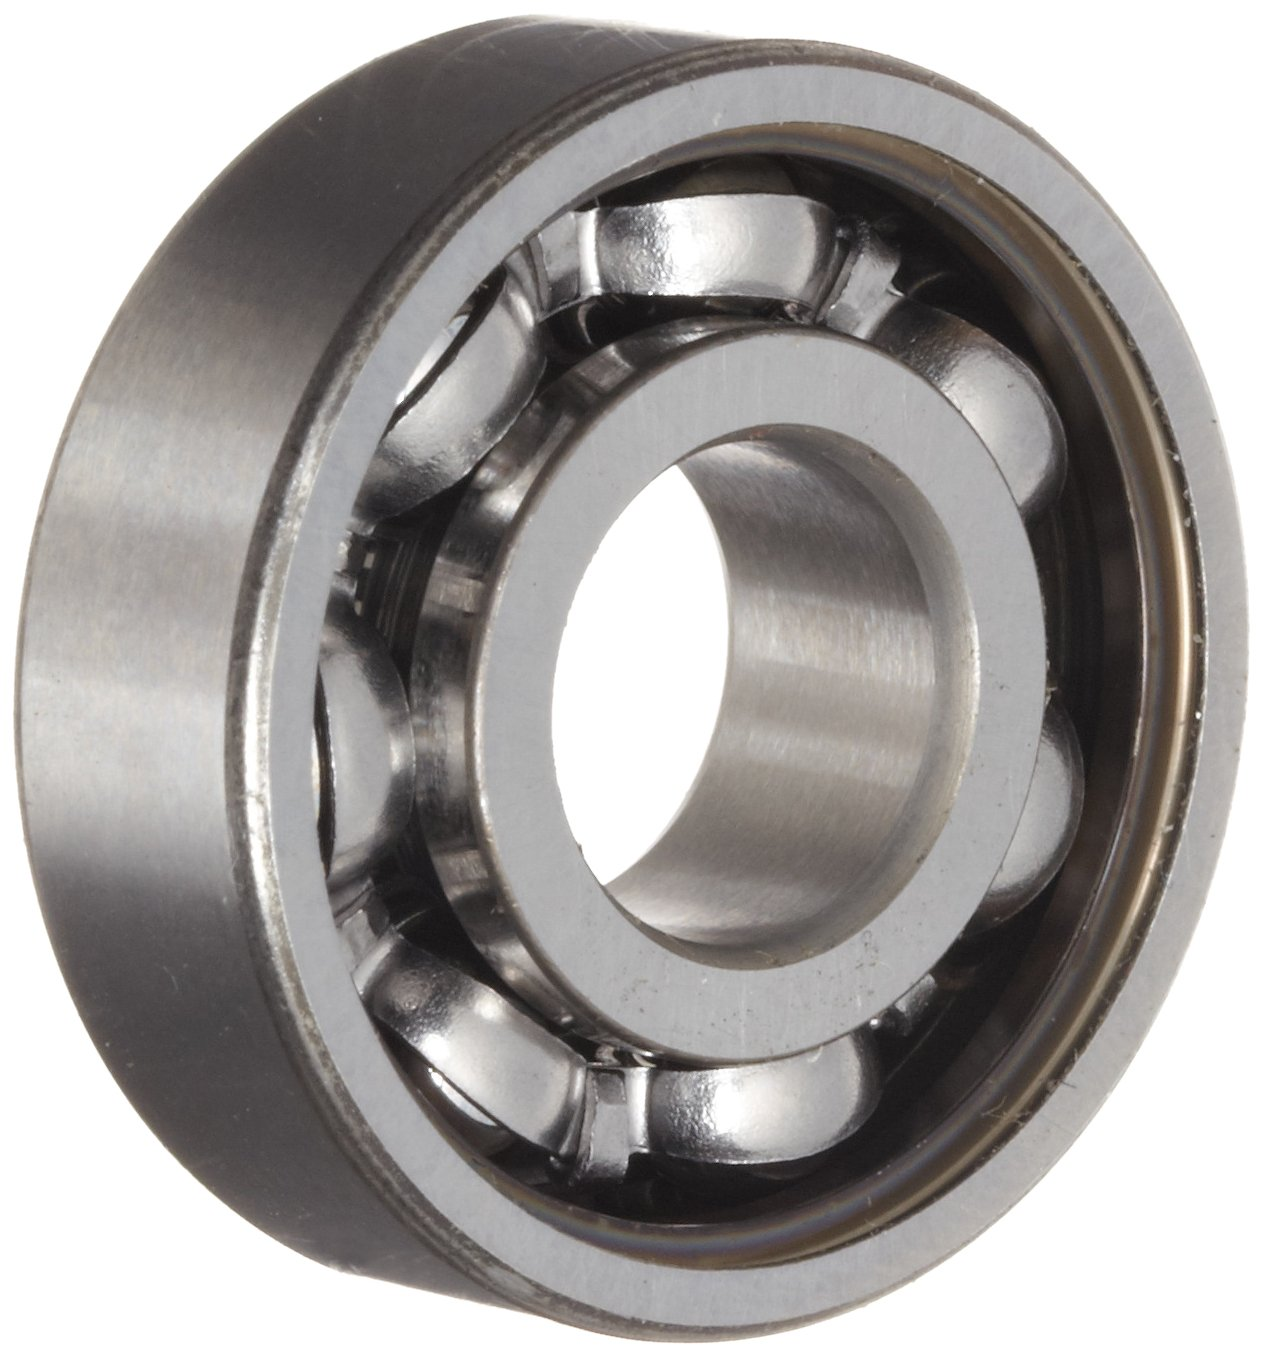 SKF 6000-Z Deep Groove Ball Bearing, Quiet Running, Single Shield, Standard Cage, Normal Clearance, 10mm Bore, 26mm OD, 8mm Width